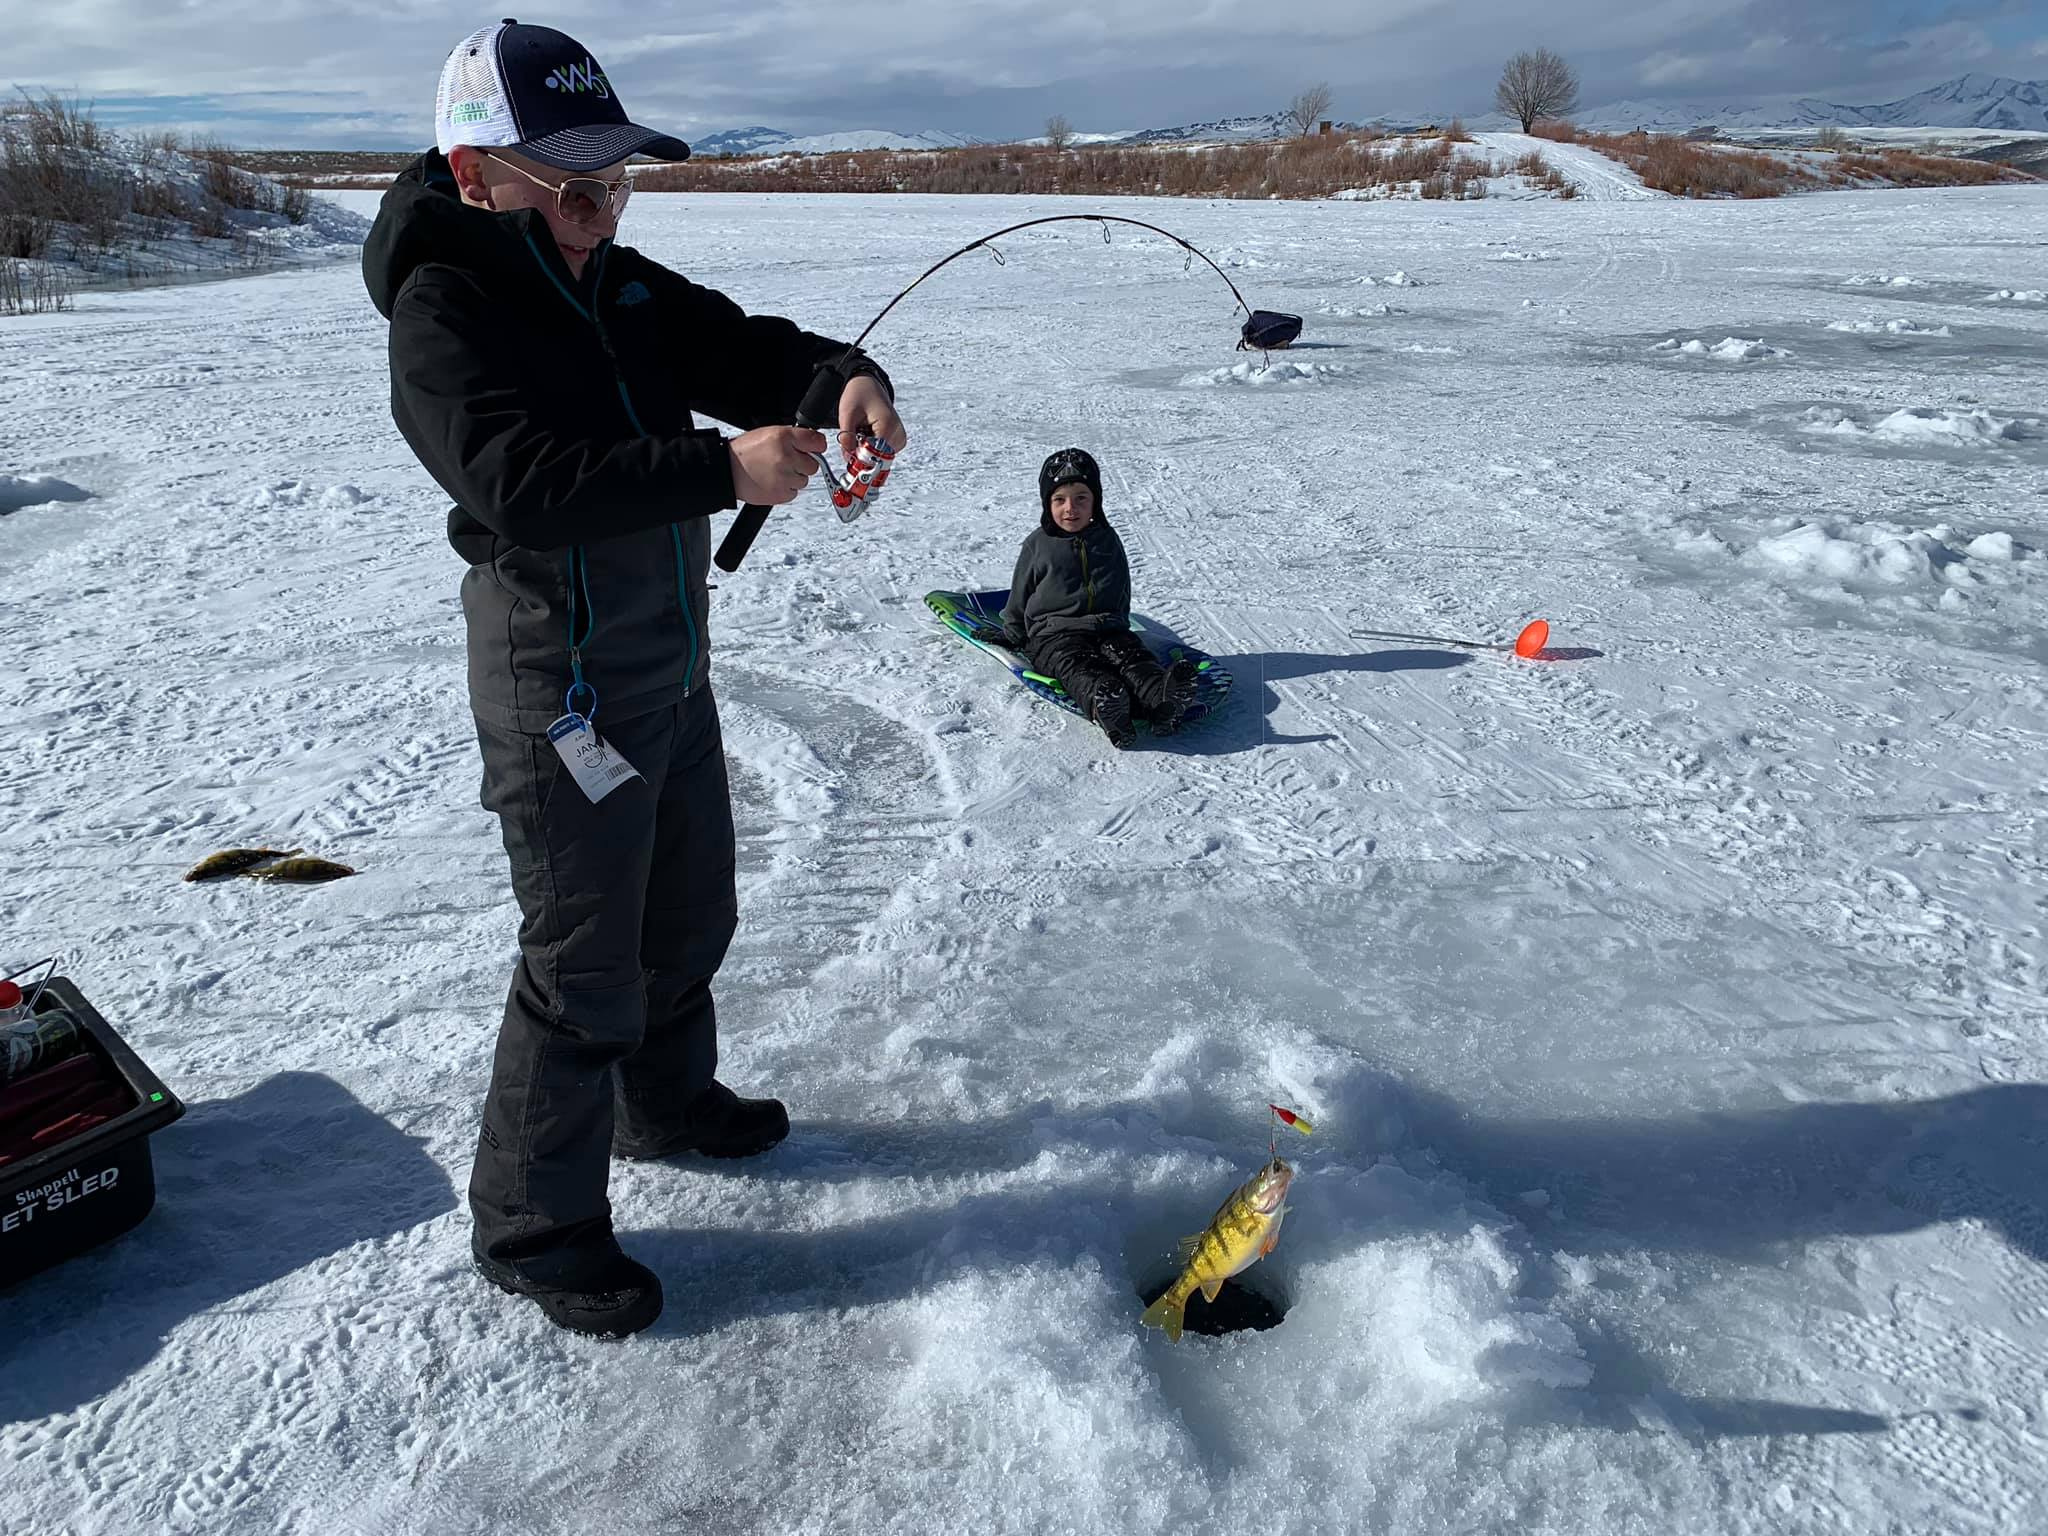 A boy holding a small fishing rod reels in a perch from an ice fishing hole.